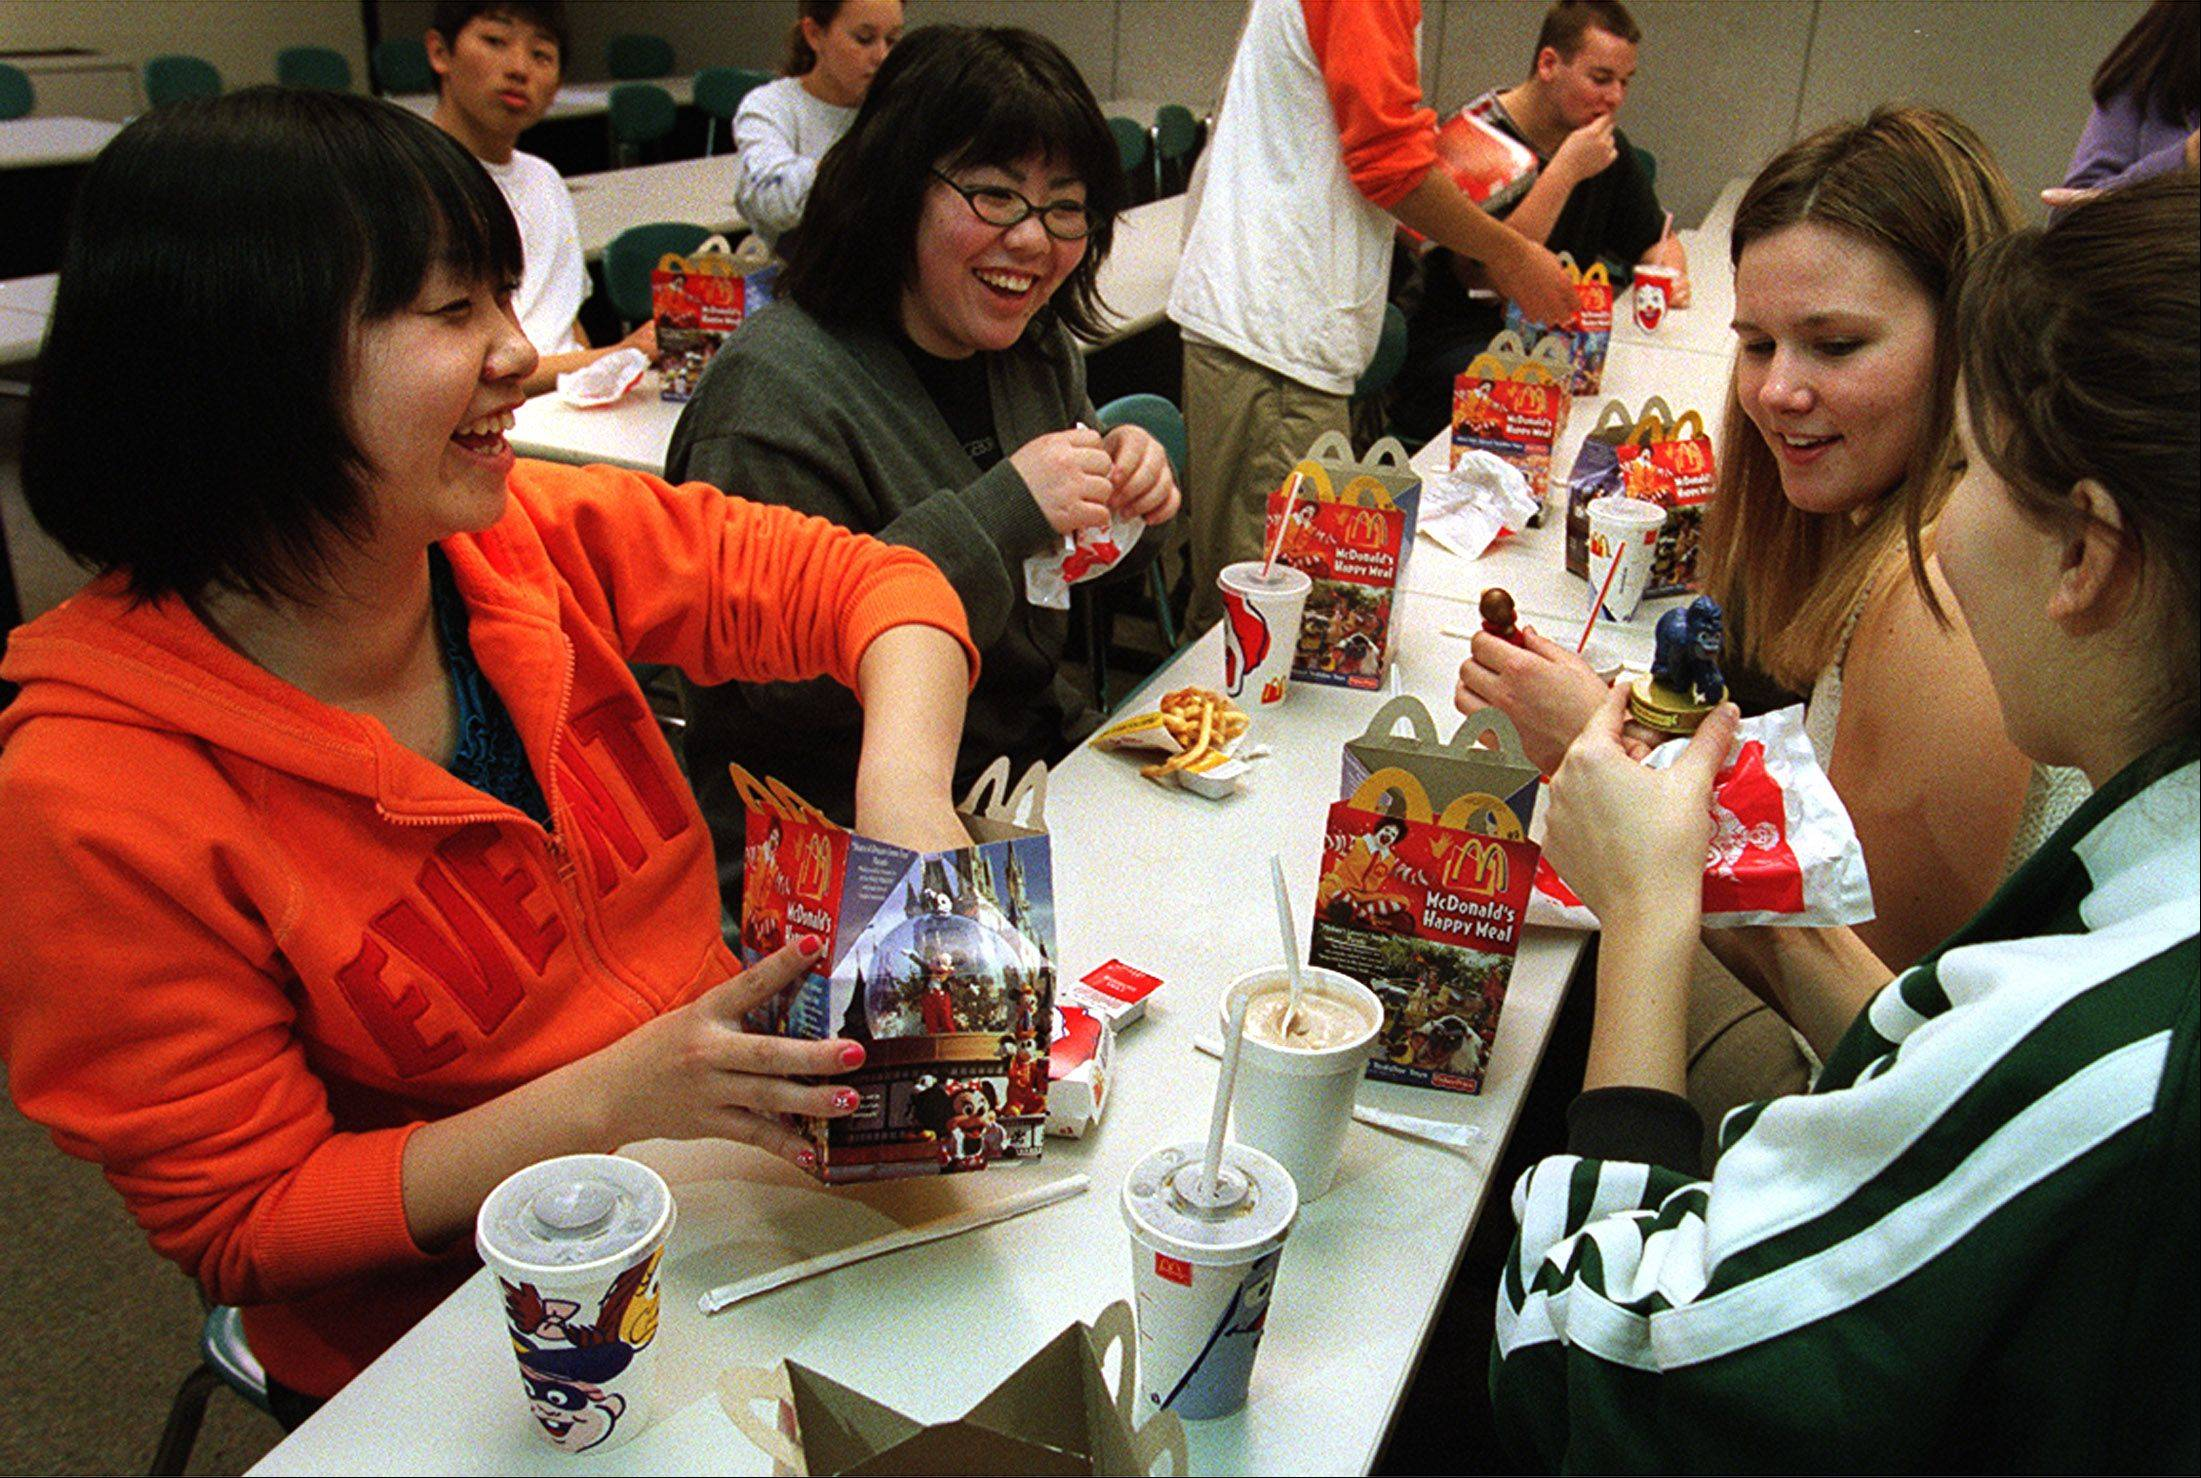 Japanese exchange students look at McDonald's Happy Meal toys with Elk Grove student council members during the 2002 student exchange.